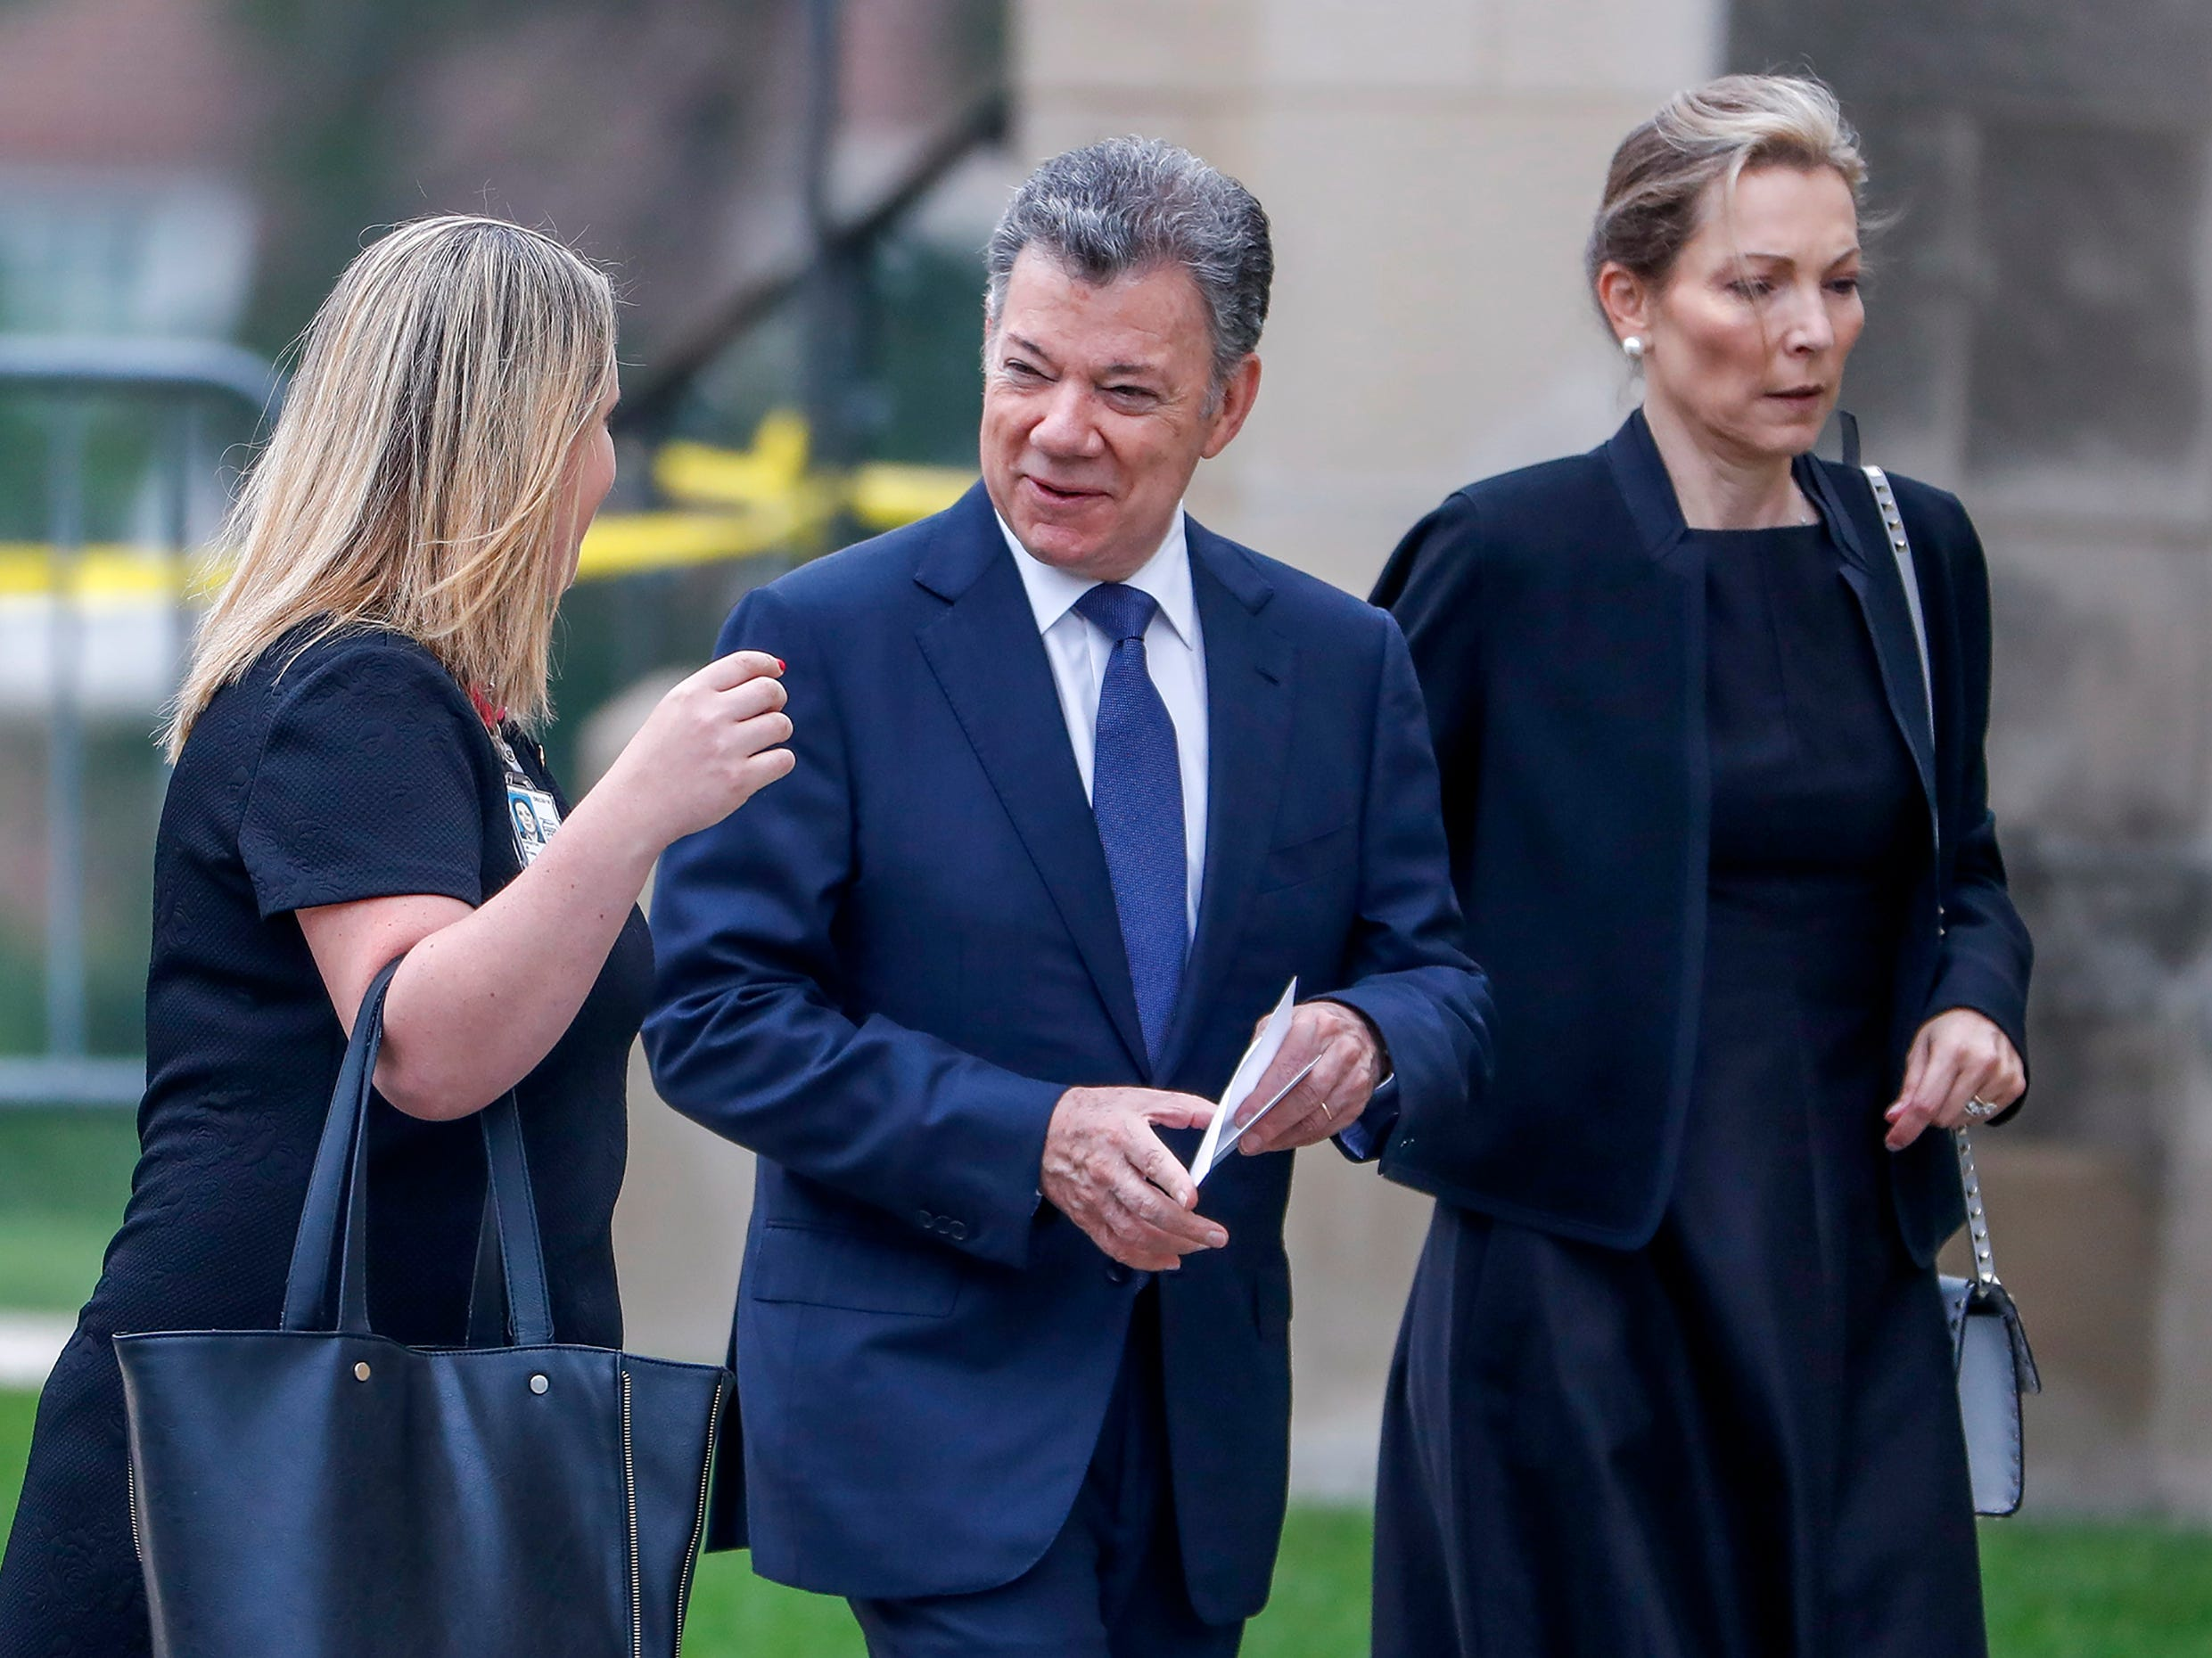 Former president of Colombia Juan Manuel Santos (C) and his wife Maria Clemencia Rodriguez Munera (R) arrive for the memorial service for Senator John McCain at the Washington National Cathedral. McCain died from brain cancer at his ranch in Sedona, Ariz. He was a veteran of the Vietnam War, served two terms in the  House of Representatives, and was elected to five terms in the Senate. McCain also ran for president twice, and was the Republican nominee in 2008.